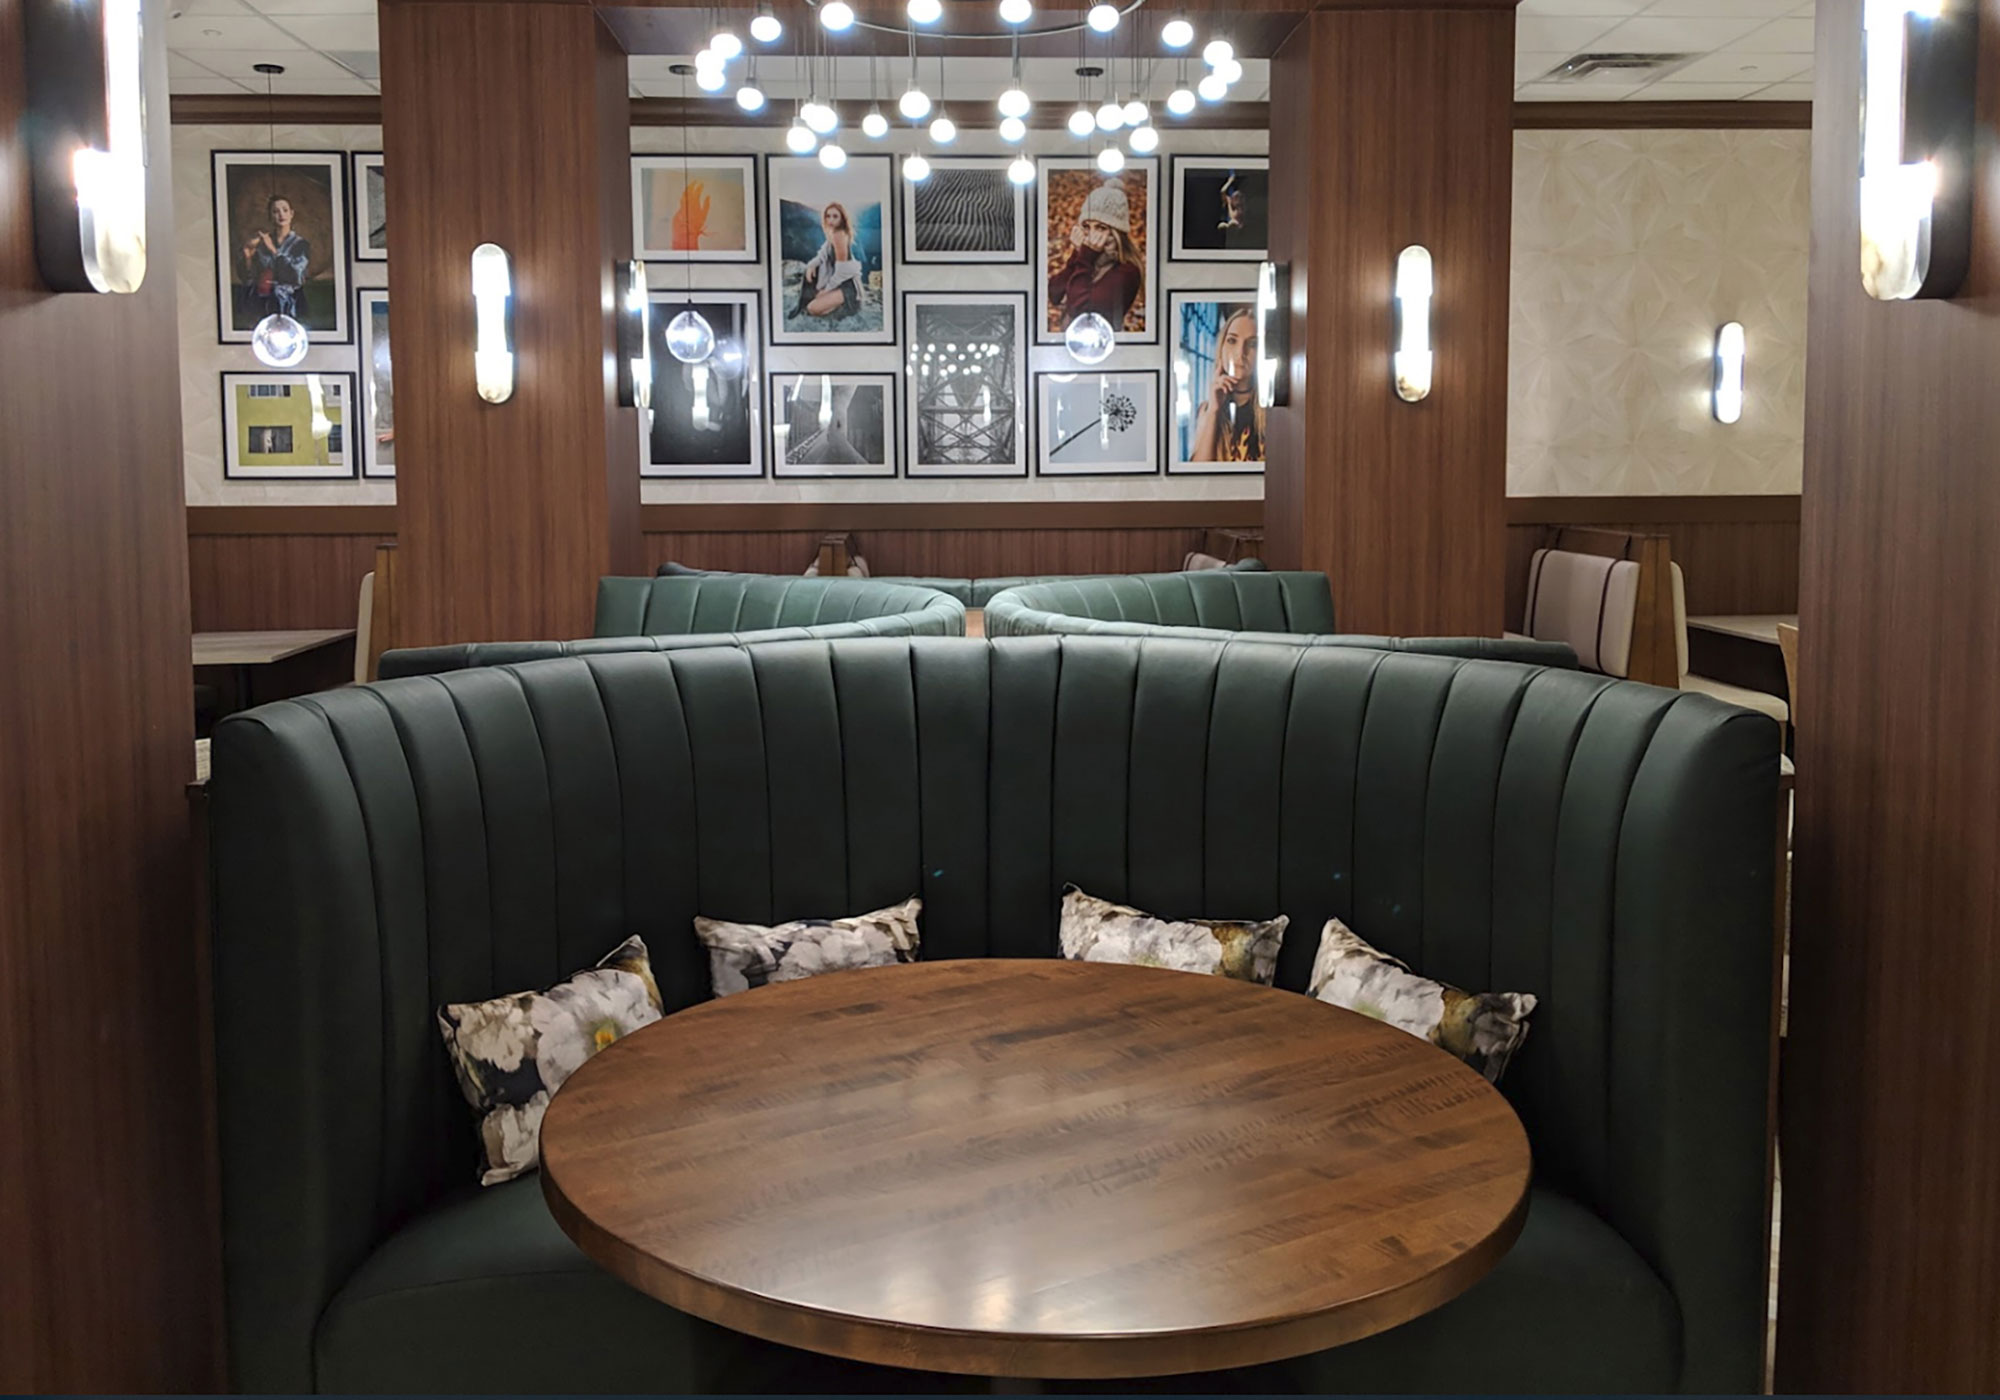 Dining booth